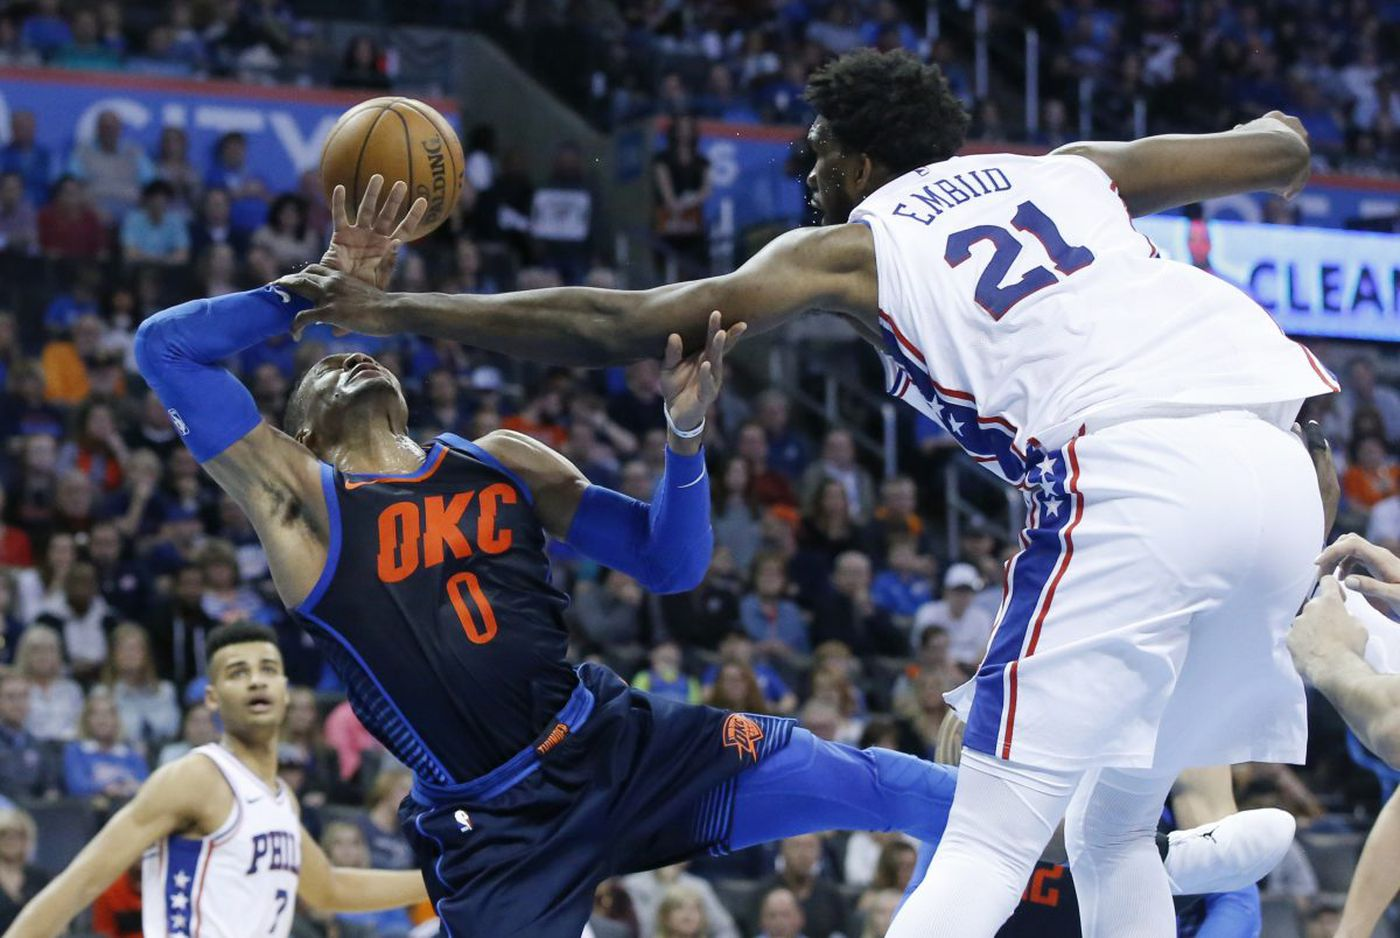 Sixers-Thunder observations: Russell Westbrook, Joel Embiid and late-game blunders